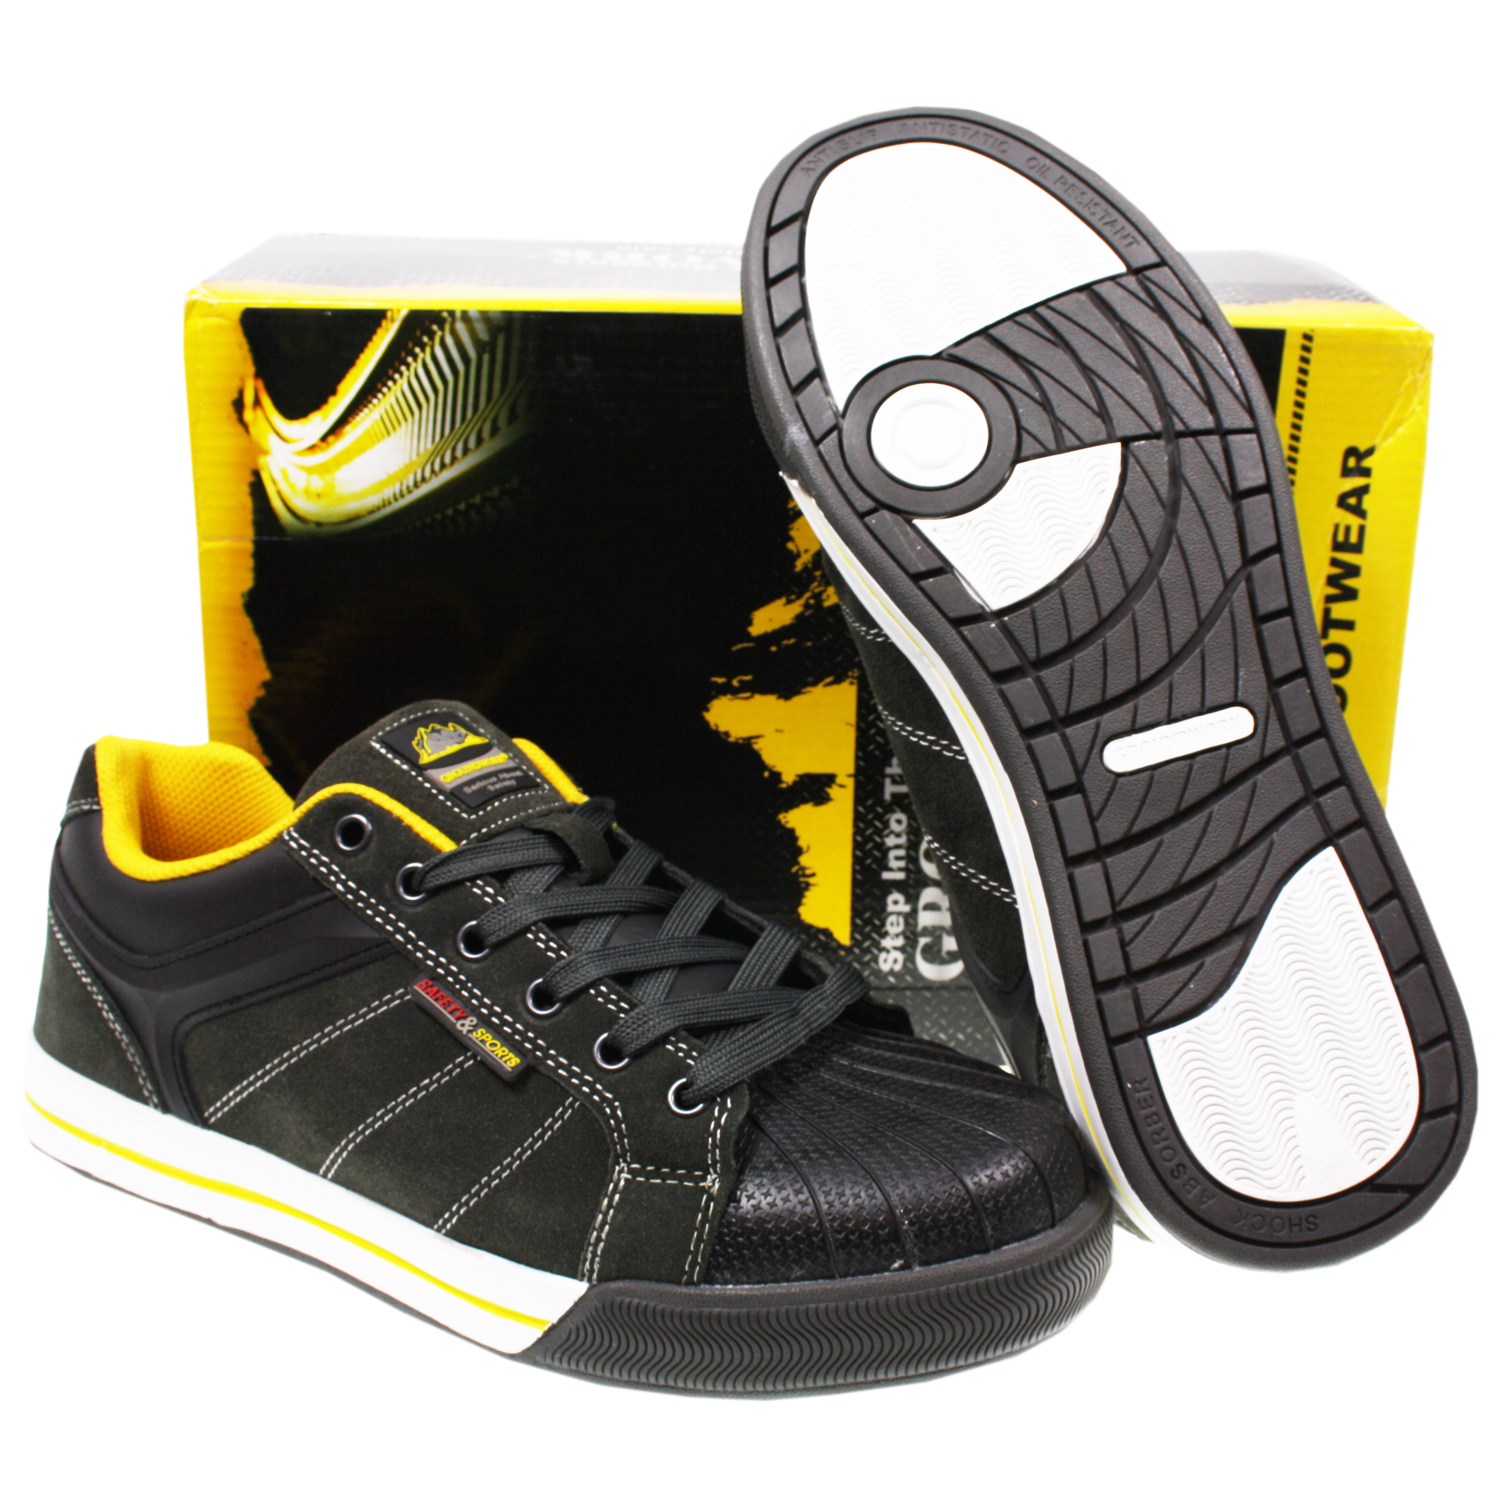 MENS-STEEL-TOE-CAP-LEATHER-WORK-SAFETY-SPORT-LIGHTWEIGHT-TRAINERS-SHOES-SIZE